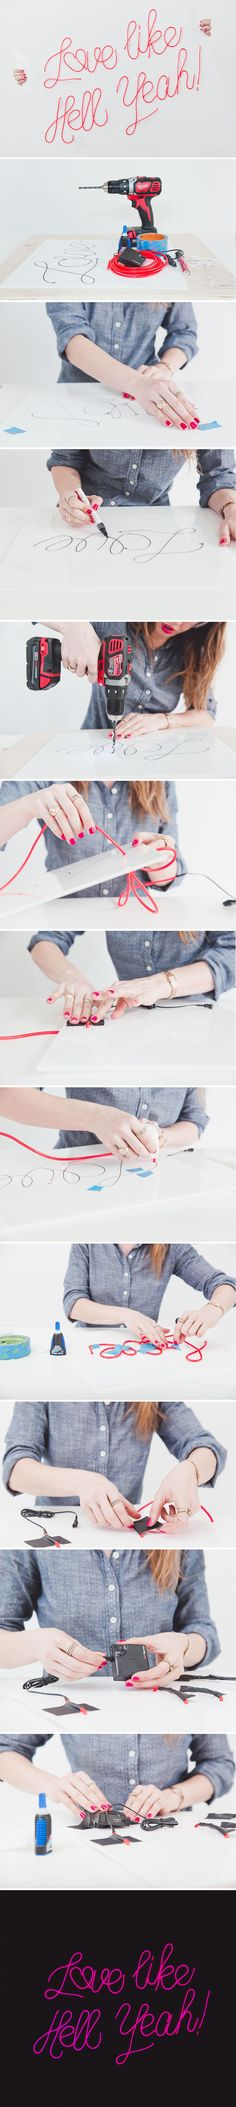 diy neon 'love' sign